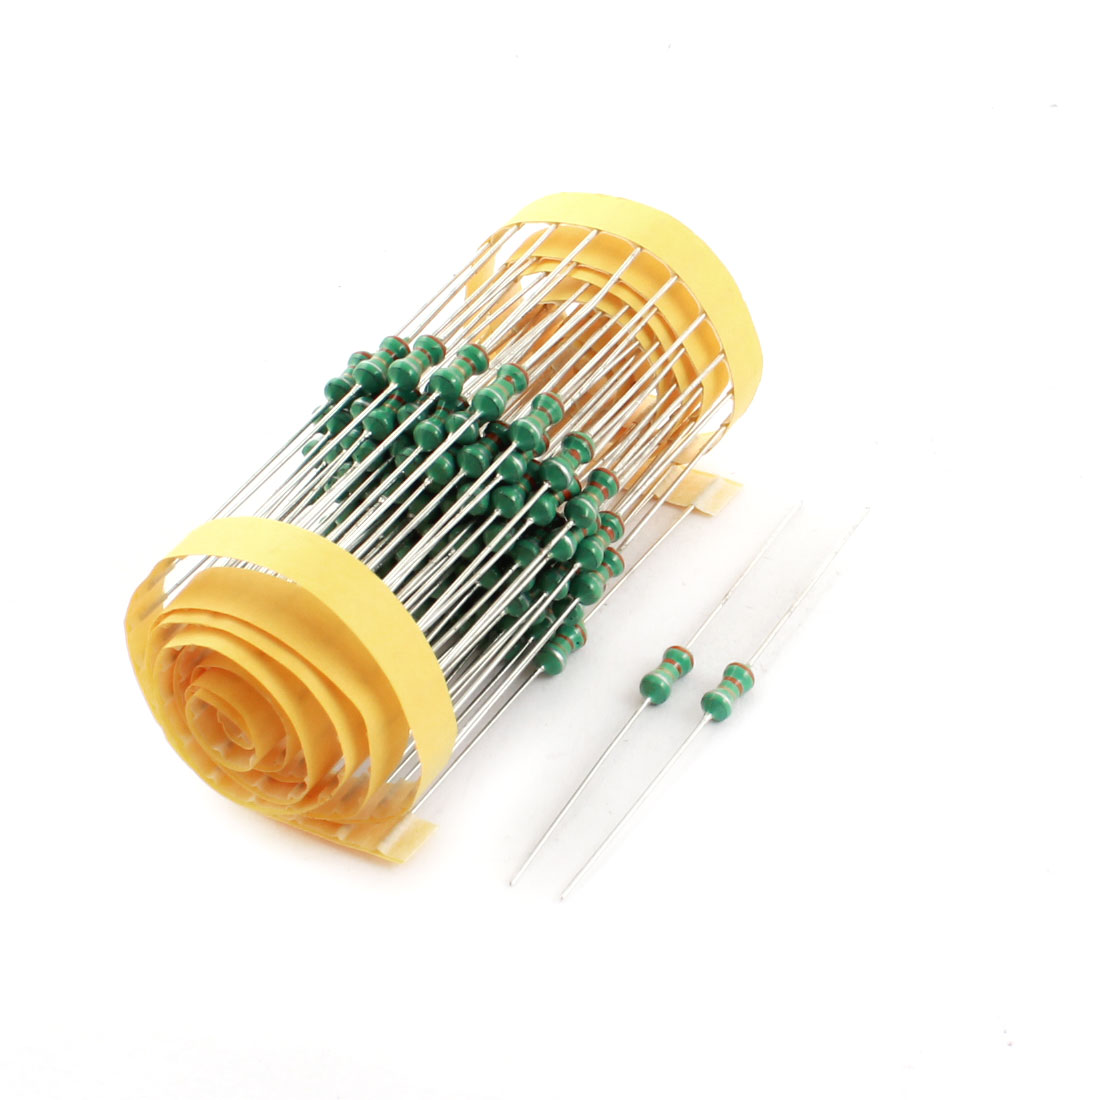 Motherboard 1/2W 3.3uH 10% 4x10mm 0410 Axial Color Ring Inductors 100pcs